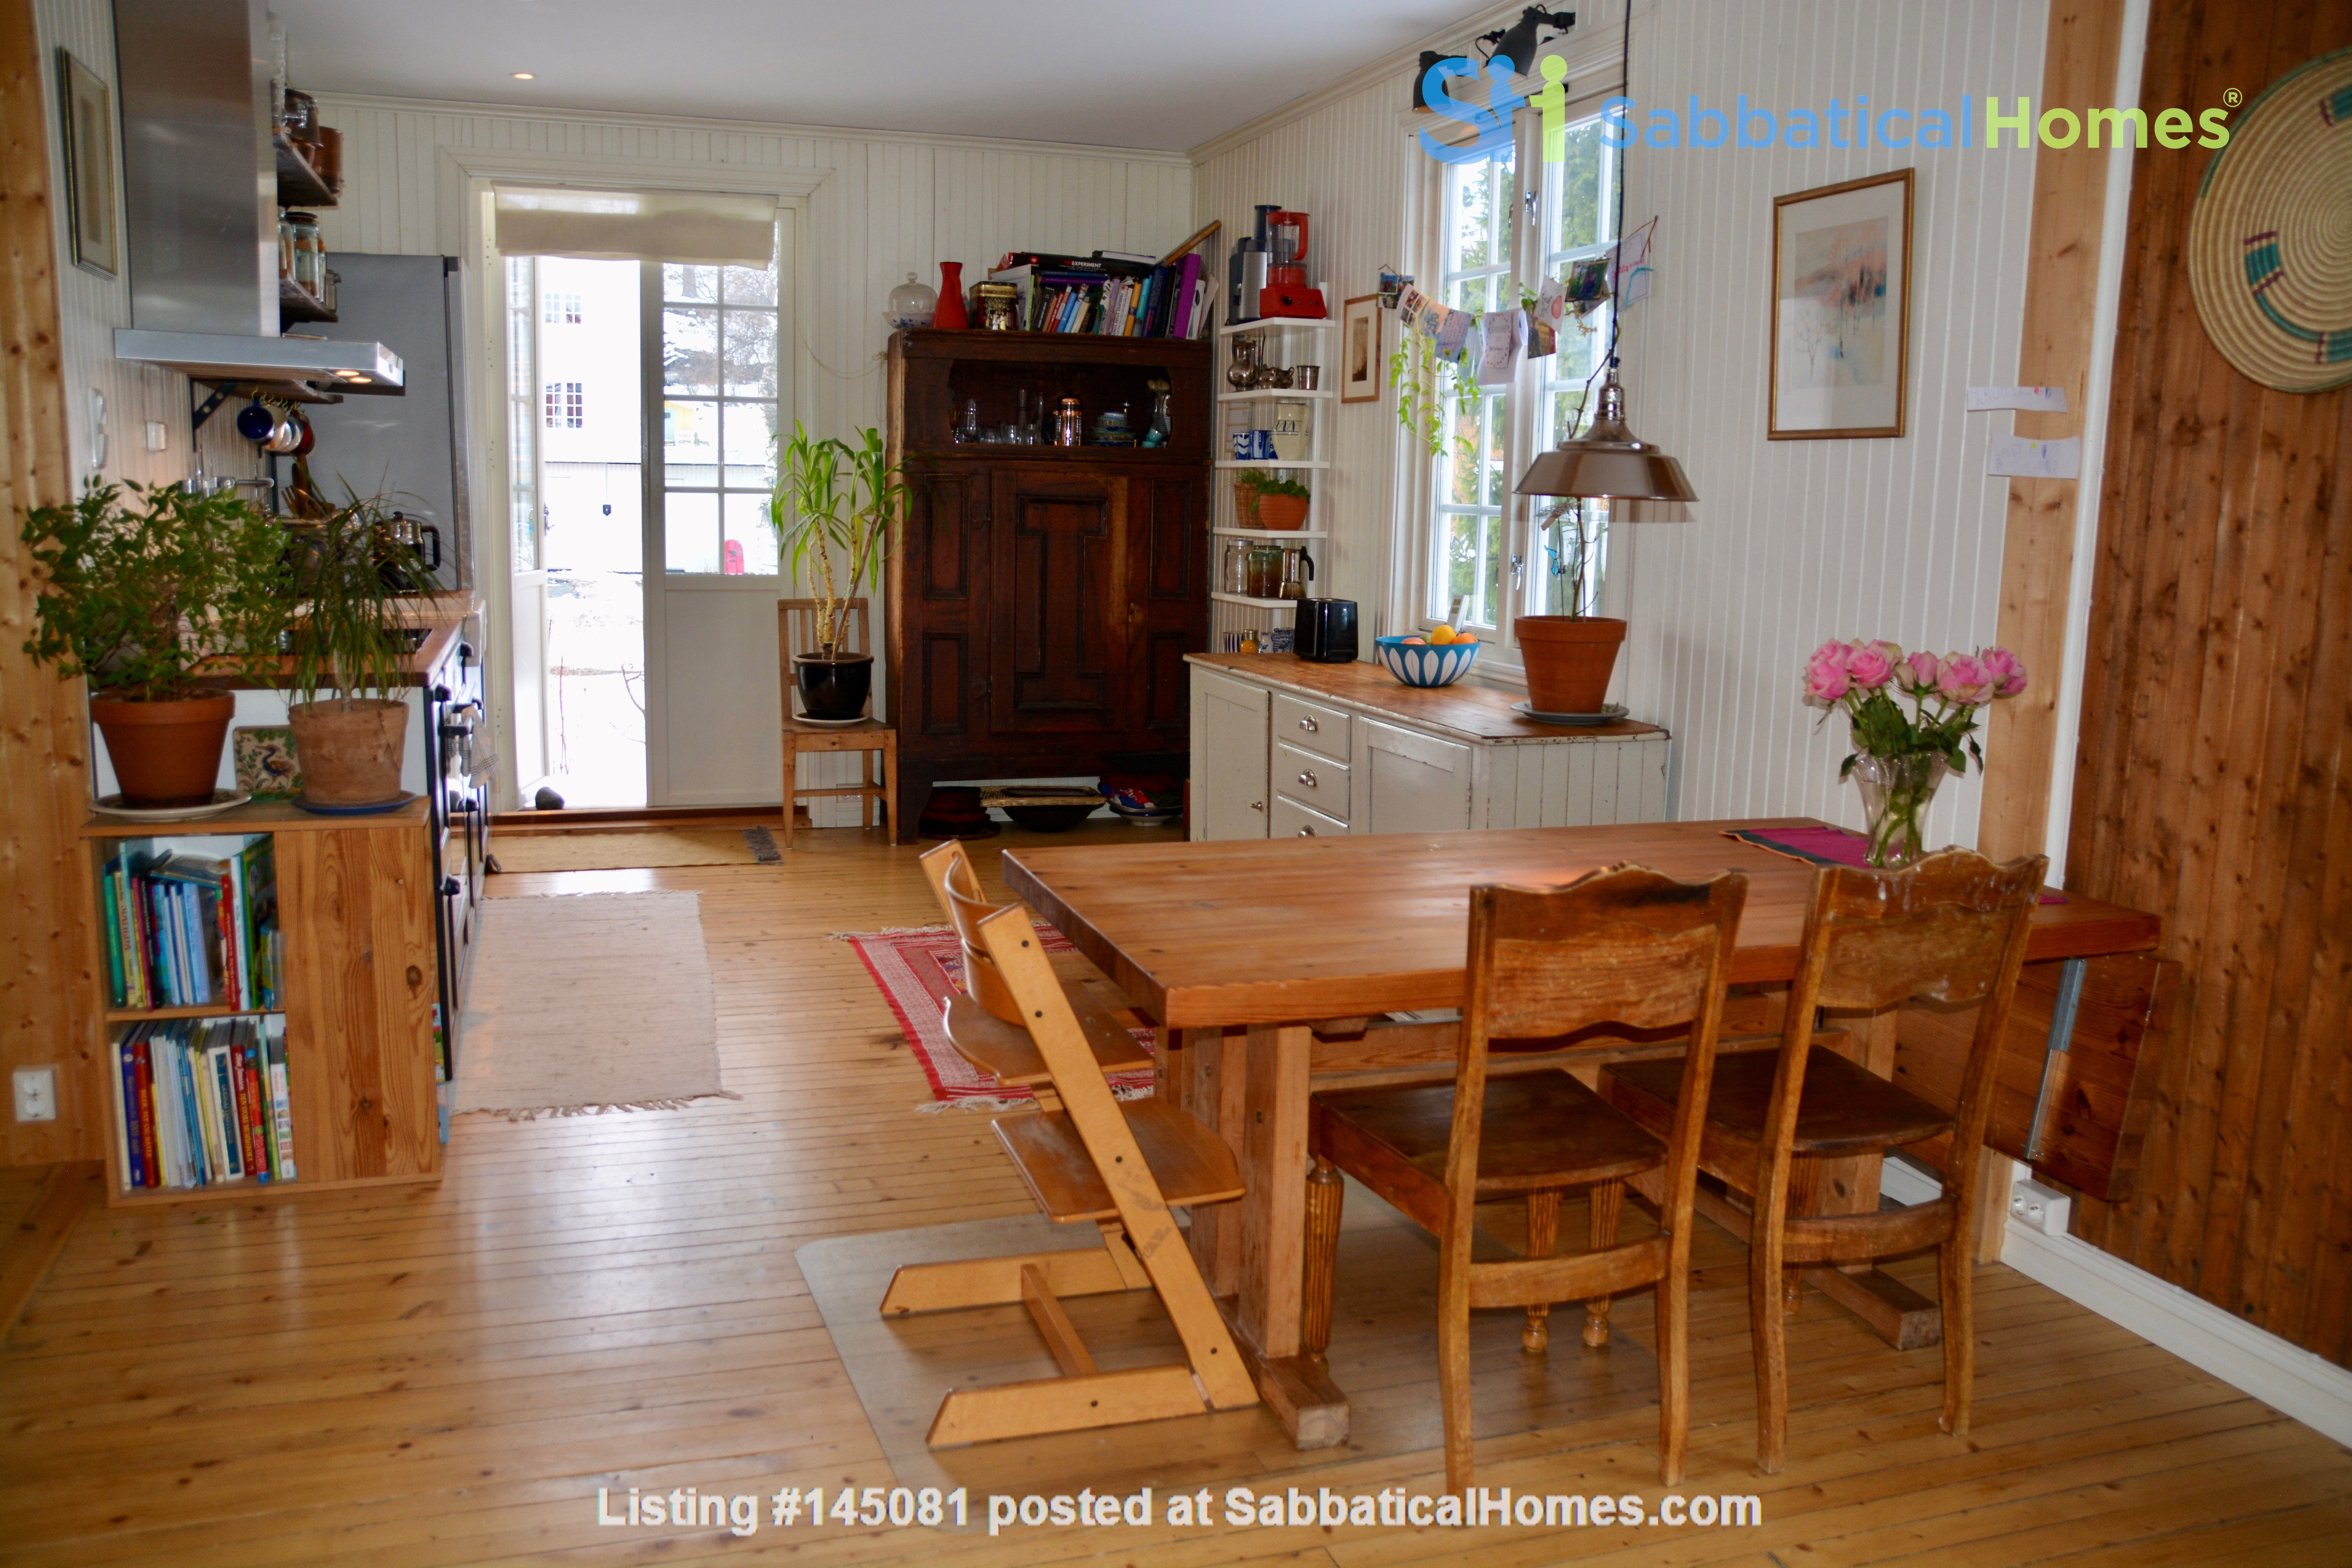 Child friendly home with four bedrooms in idyllic surroundings Home Rental in Trondheim, Trøndelag, Norway 3